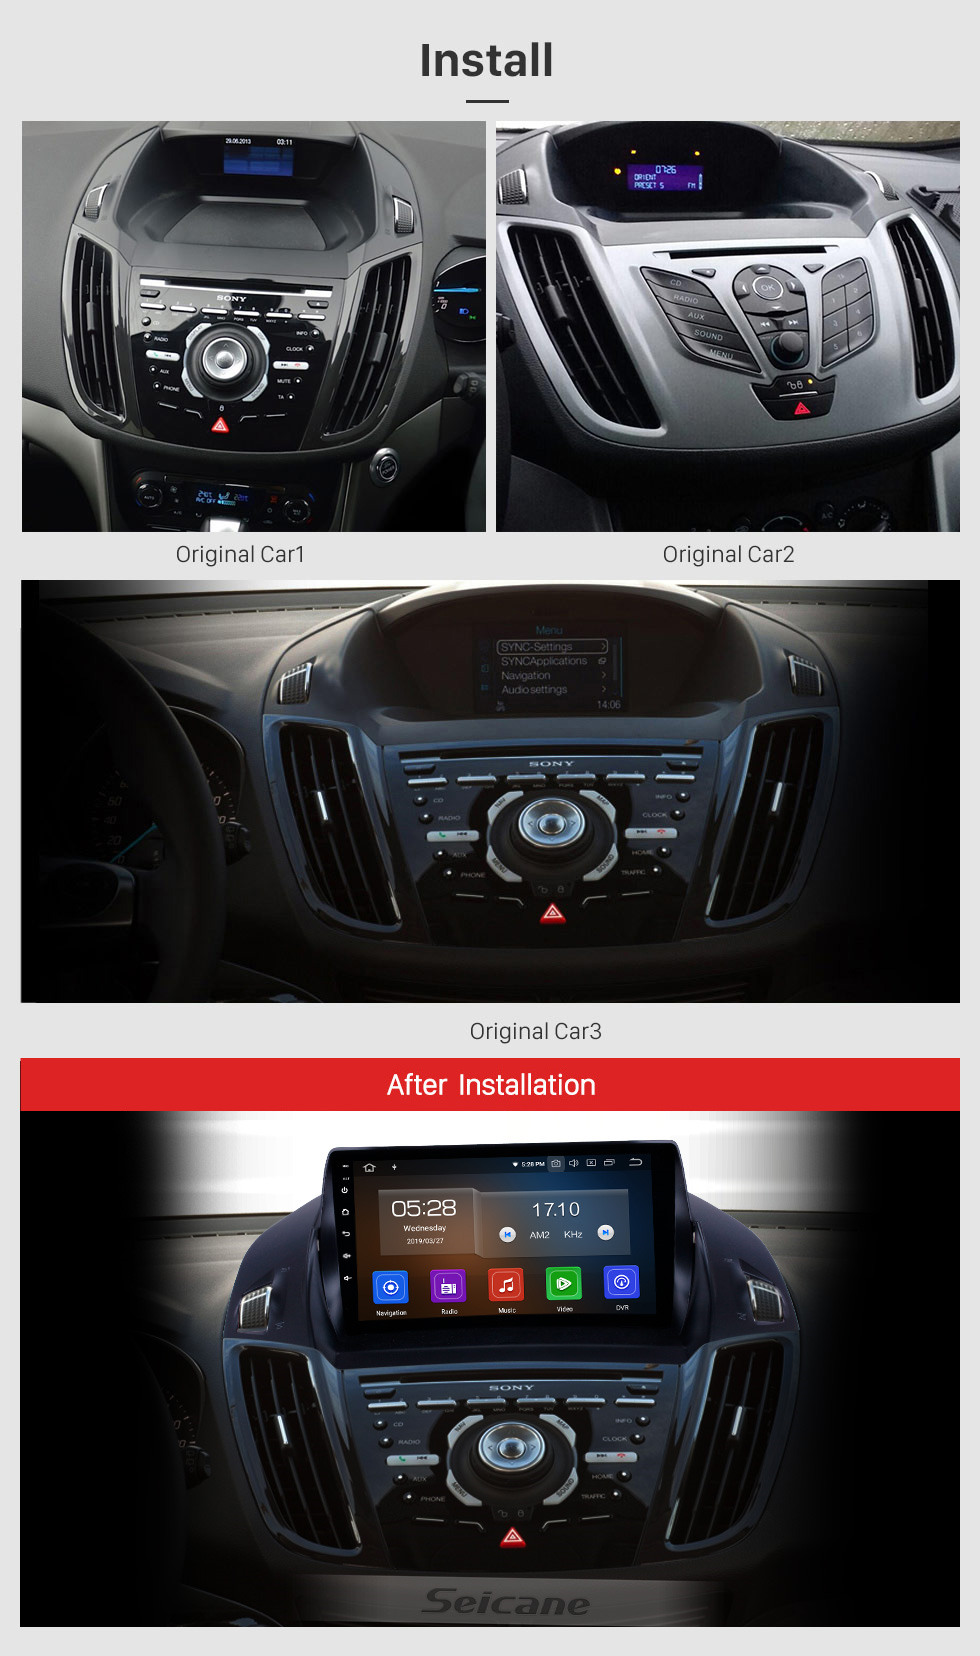 Seicane OEM 9 inch Android 10.0 Radio for 2013-2016 Ford Escape Bluetooth Wifi HD Touchscreen Music GPS Navigation Carplay support DAB+ Rearview camera